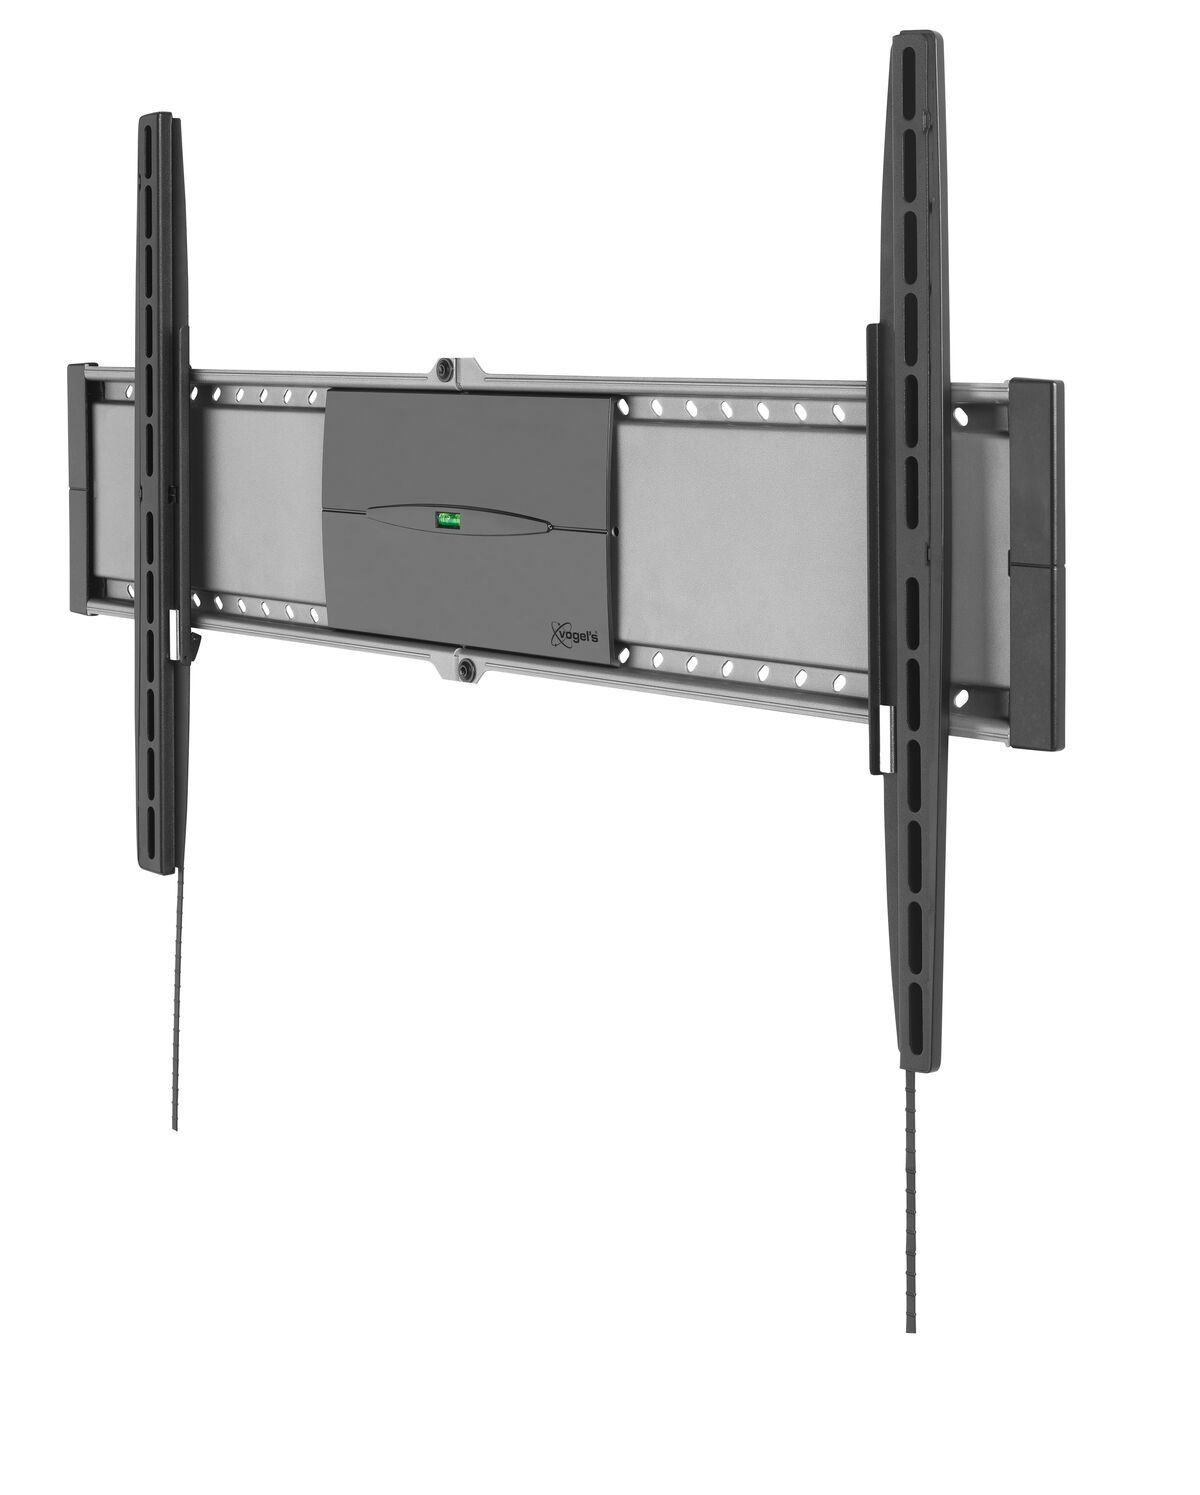 Vogel's EFW 8305 Fixed TV Wall Mount - Suitable for 70 - Suitable for Product